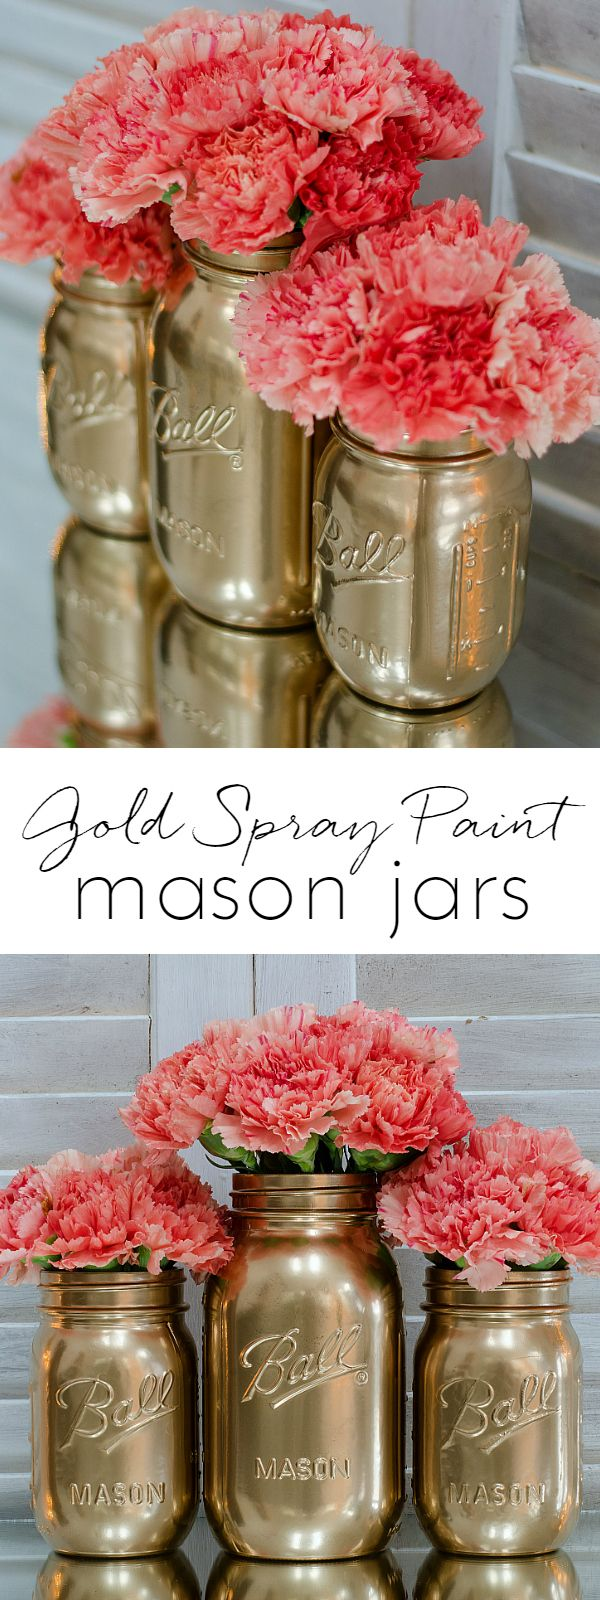 Spray Paint Craft Ideas Part - 28: How To Spray Paint Jars - Gold Spray Painted Mason Jars - Mason Jar Craft  Ideas